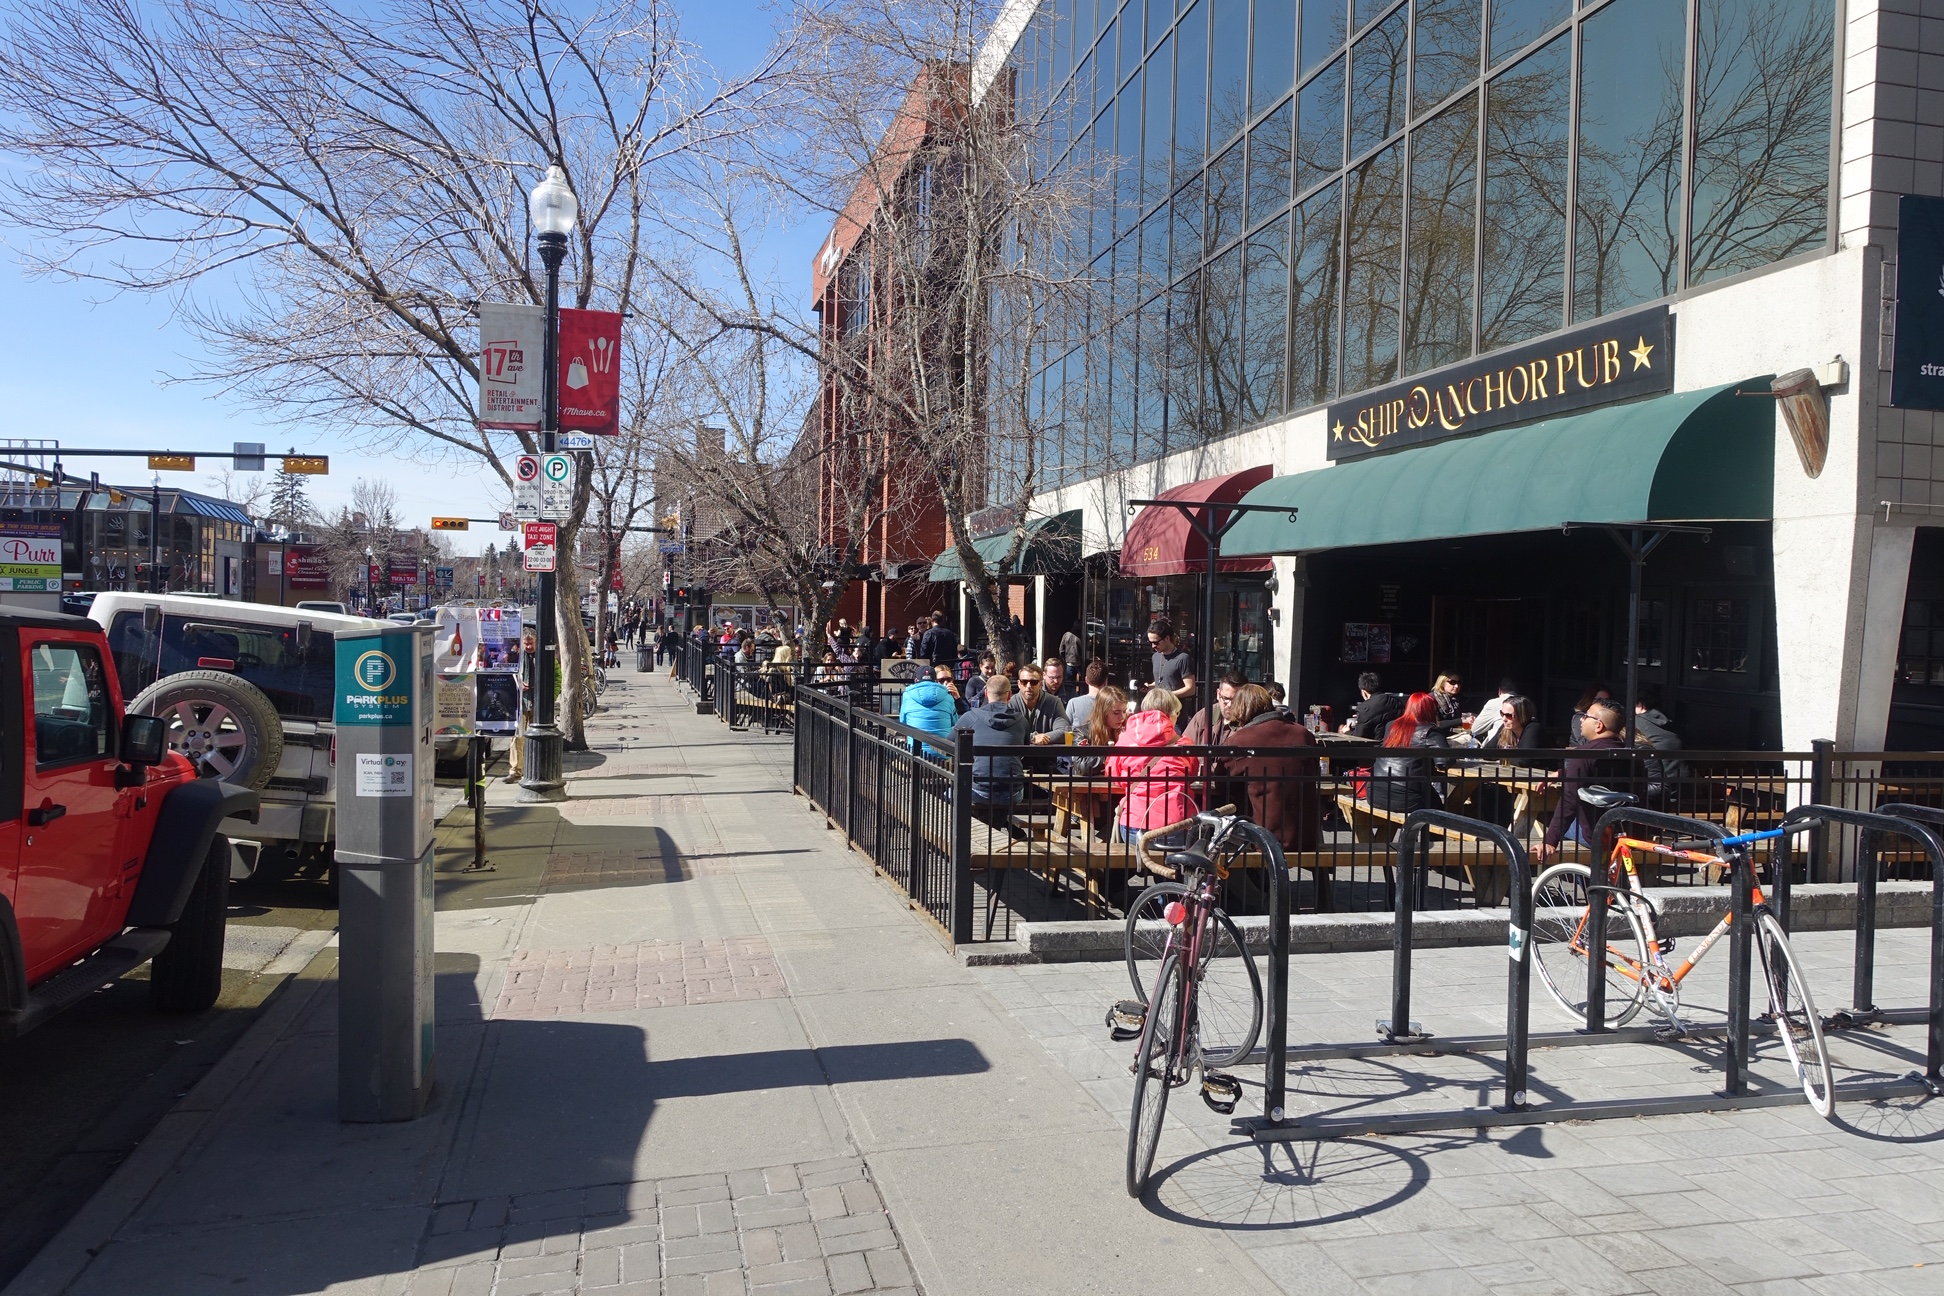 Calgary's 17th Avenue is lined with sidewalk patios that make for great people watching.